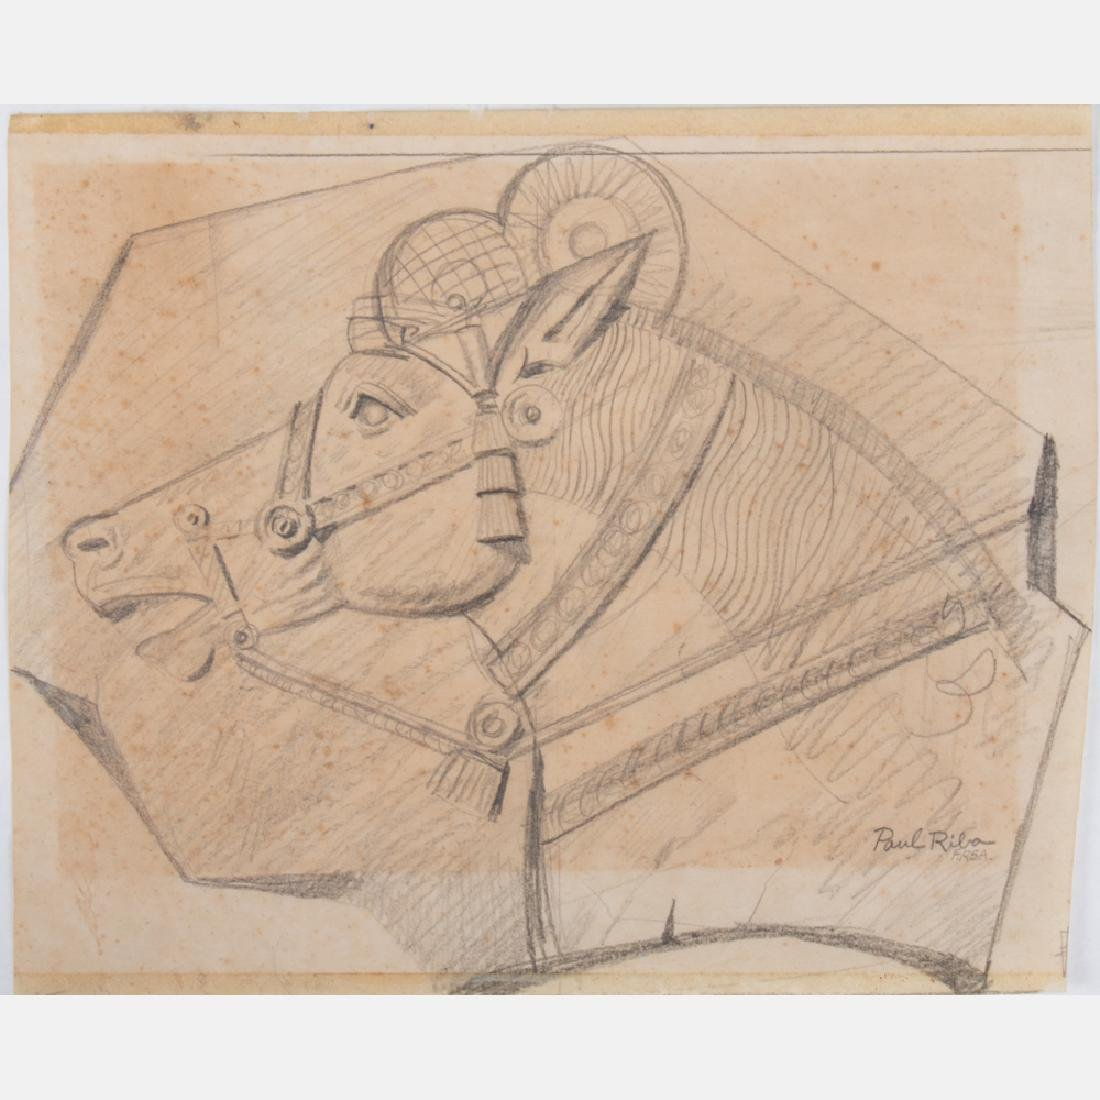 Paul Riba (1912-1977) A Group of Four Studies, Pencil - 2